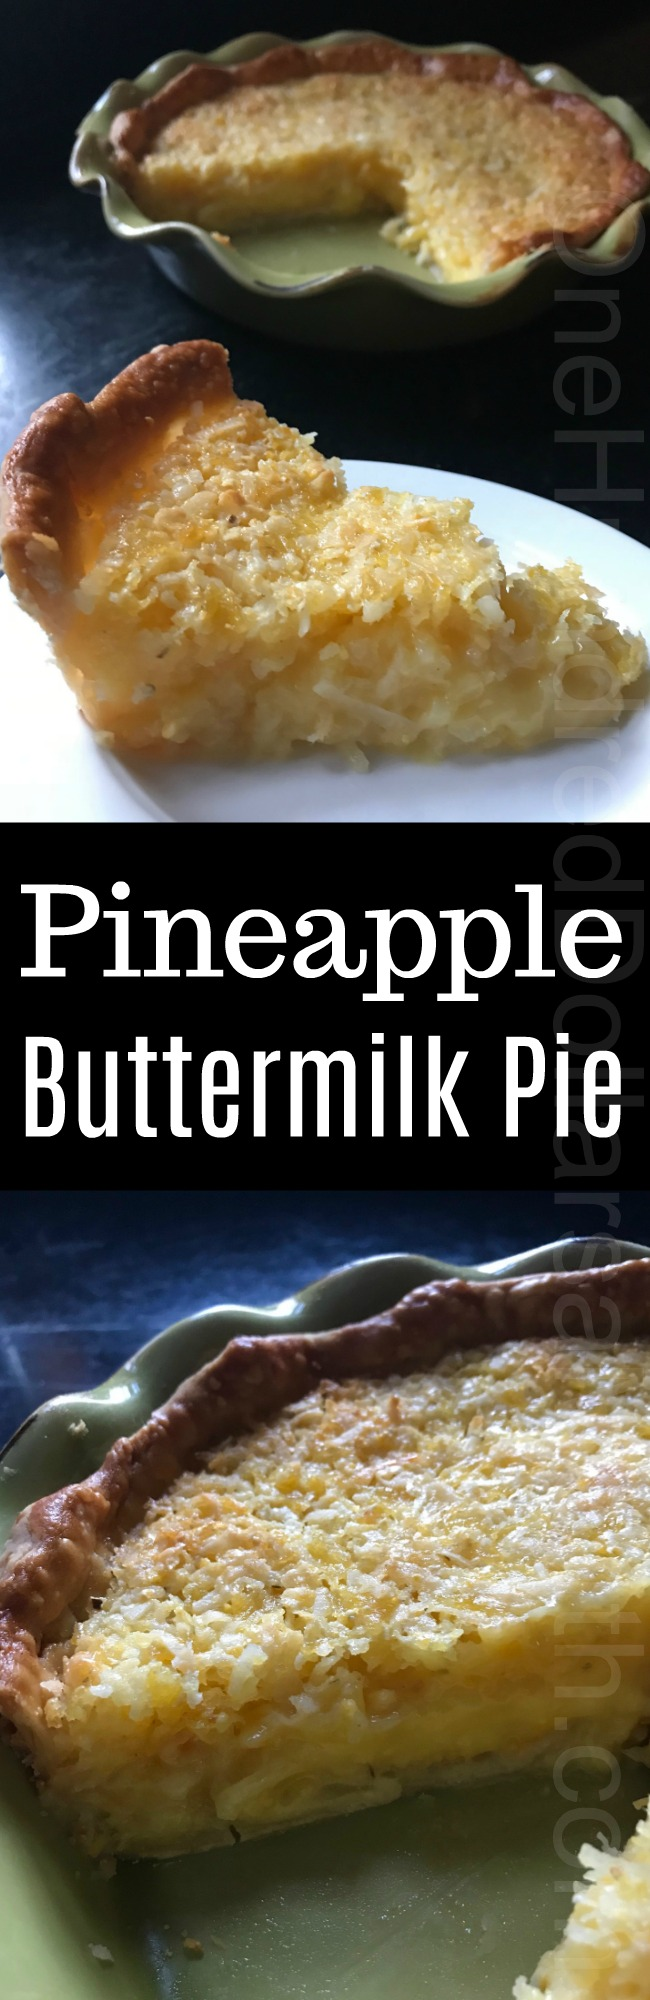 Thanksgiving Recipes – Pineapple Buttermilk Pie